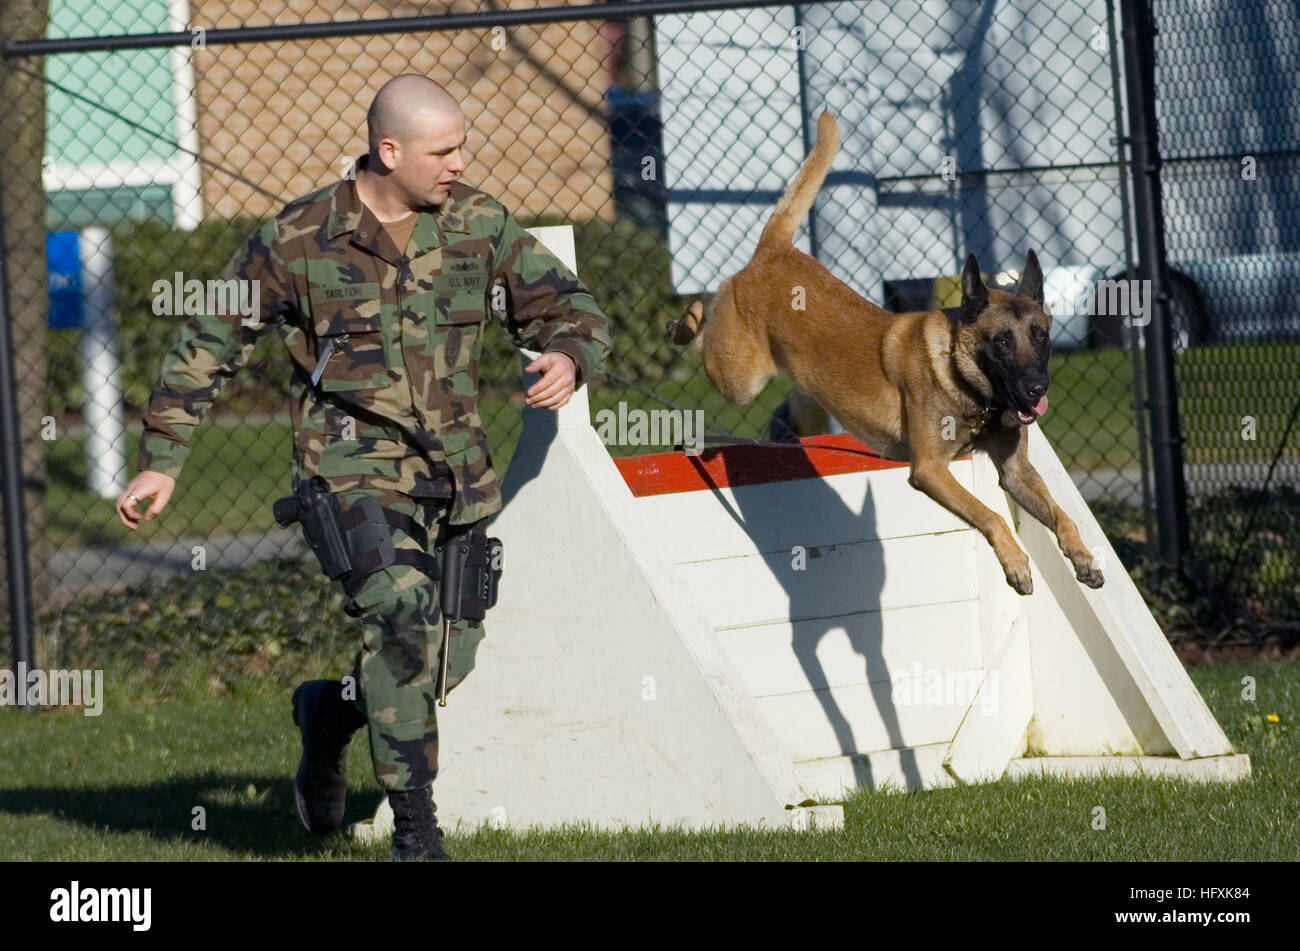 060208-n-3390m-021 everett, Wash. (feb 8, 2005) - U.s. Navy Dog ...